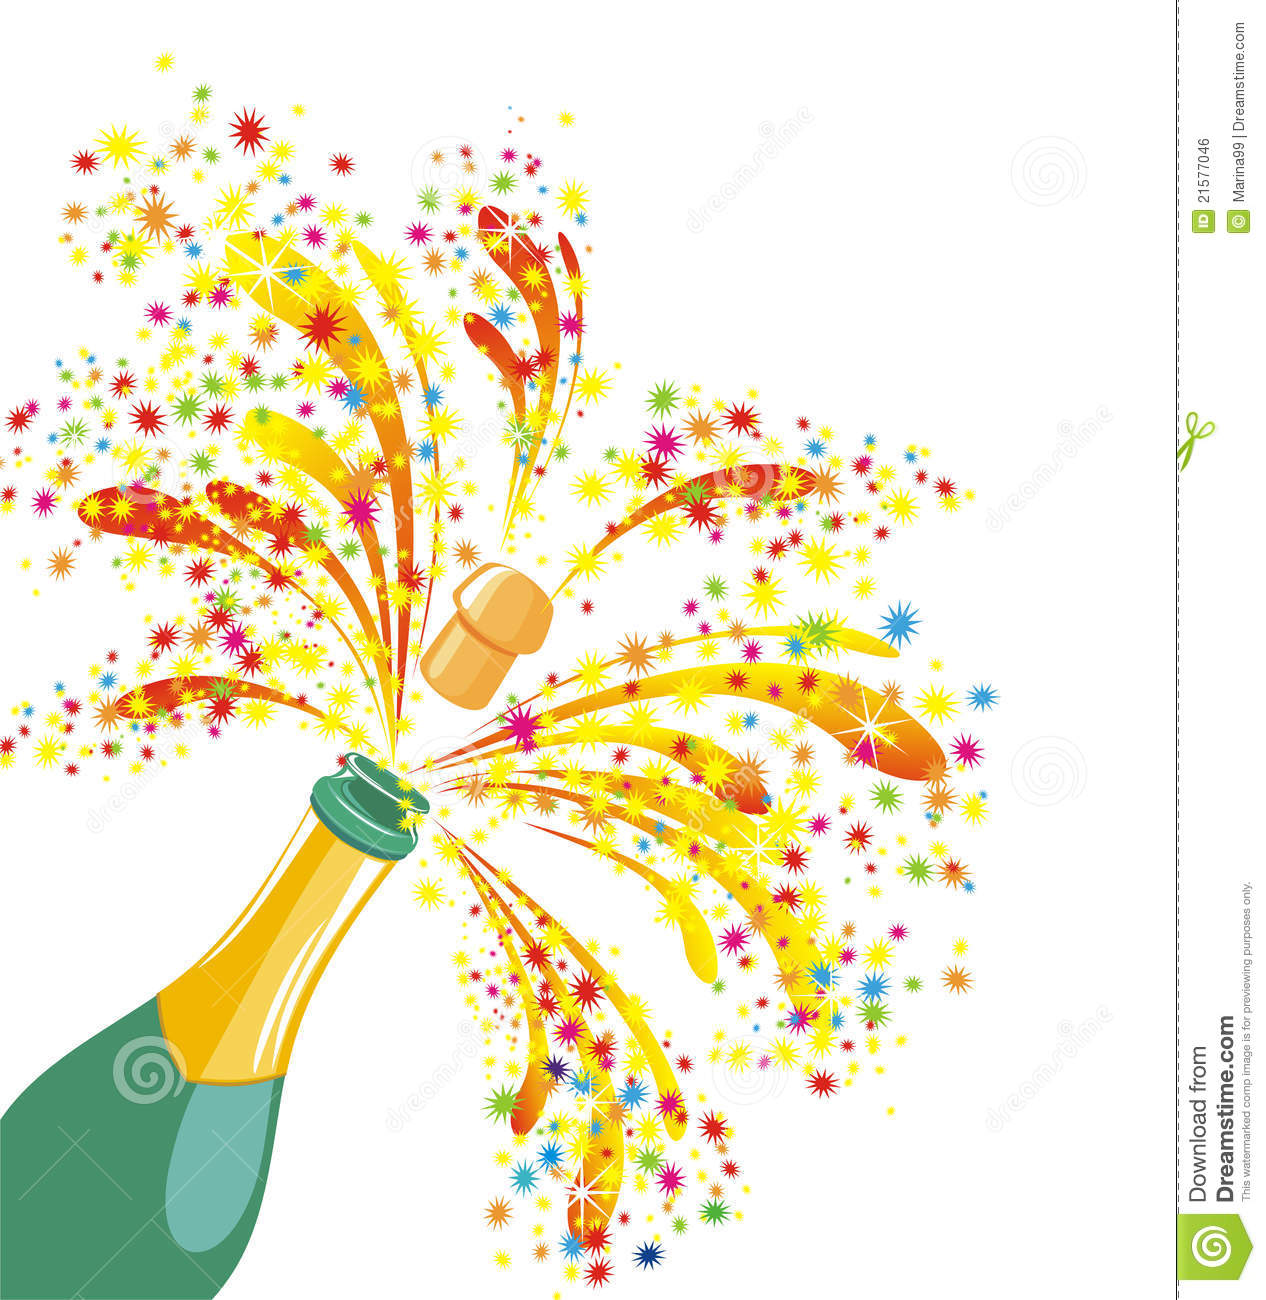 ... . Vector Illustration Royalty Free Stock Image - Image: 21577046